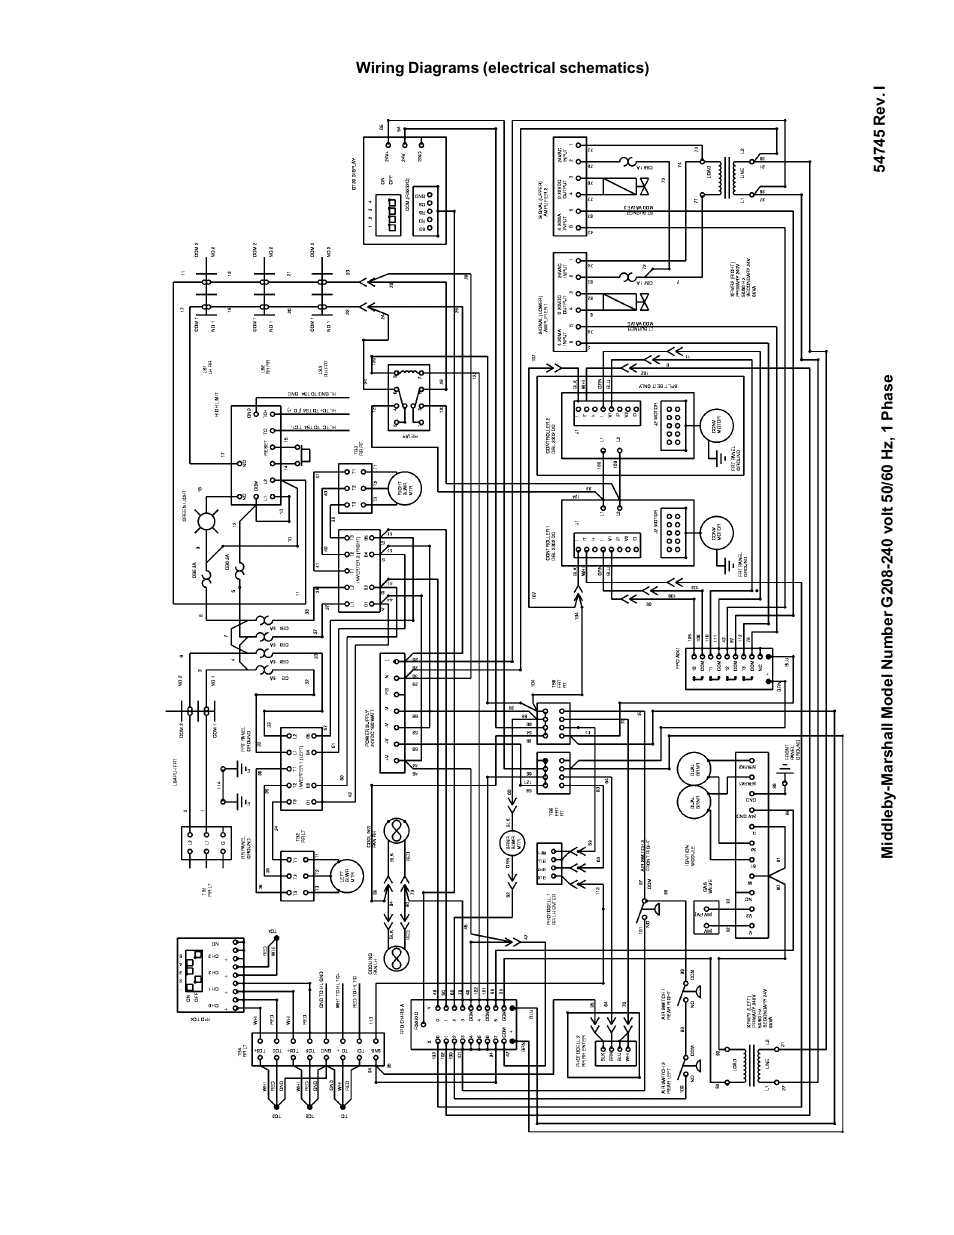 Middleby Marshall Wiring Diagram Free Download Lincoln Oven Ps870 Series Gas Ovens Ps870g User Manual Hoods At